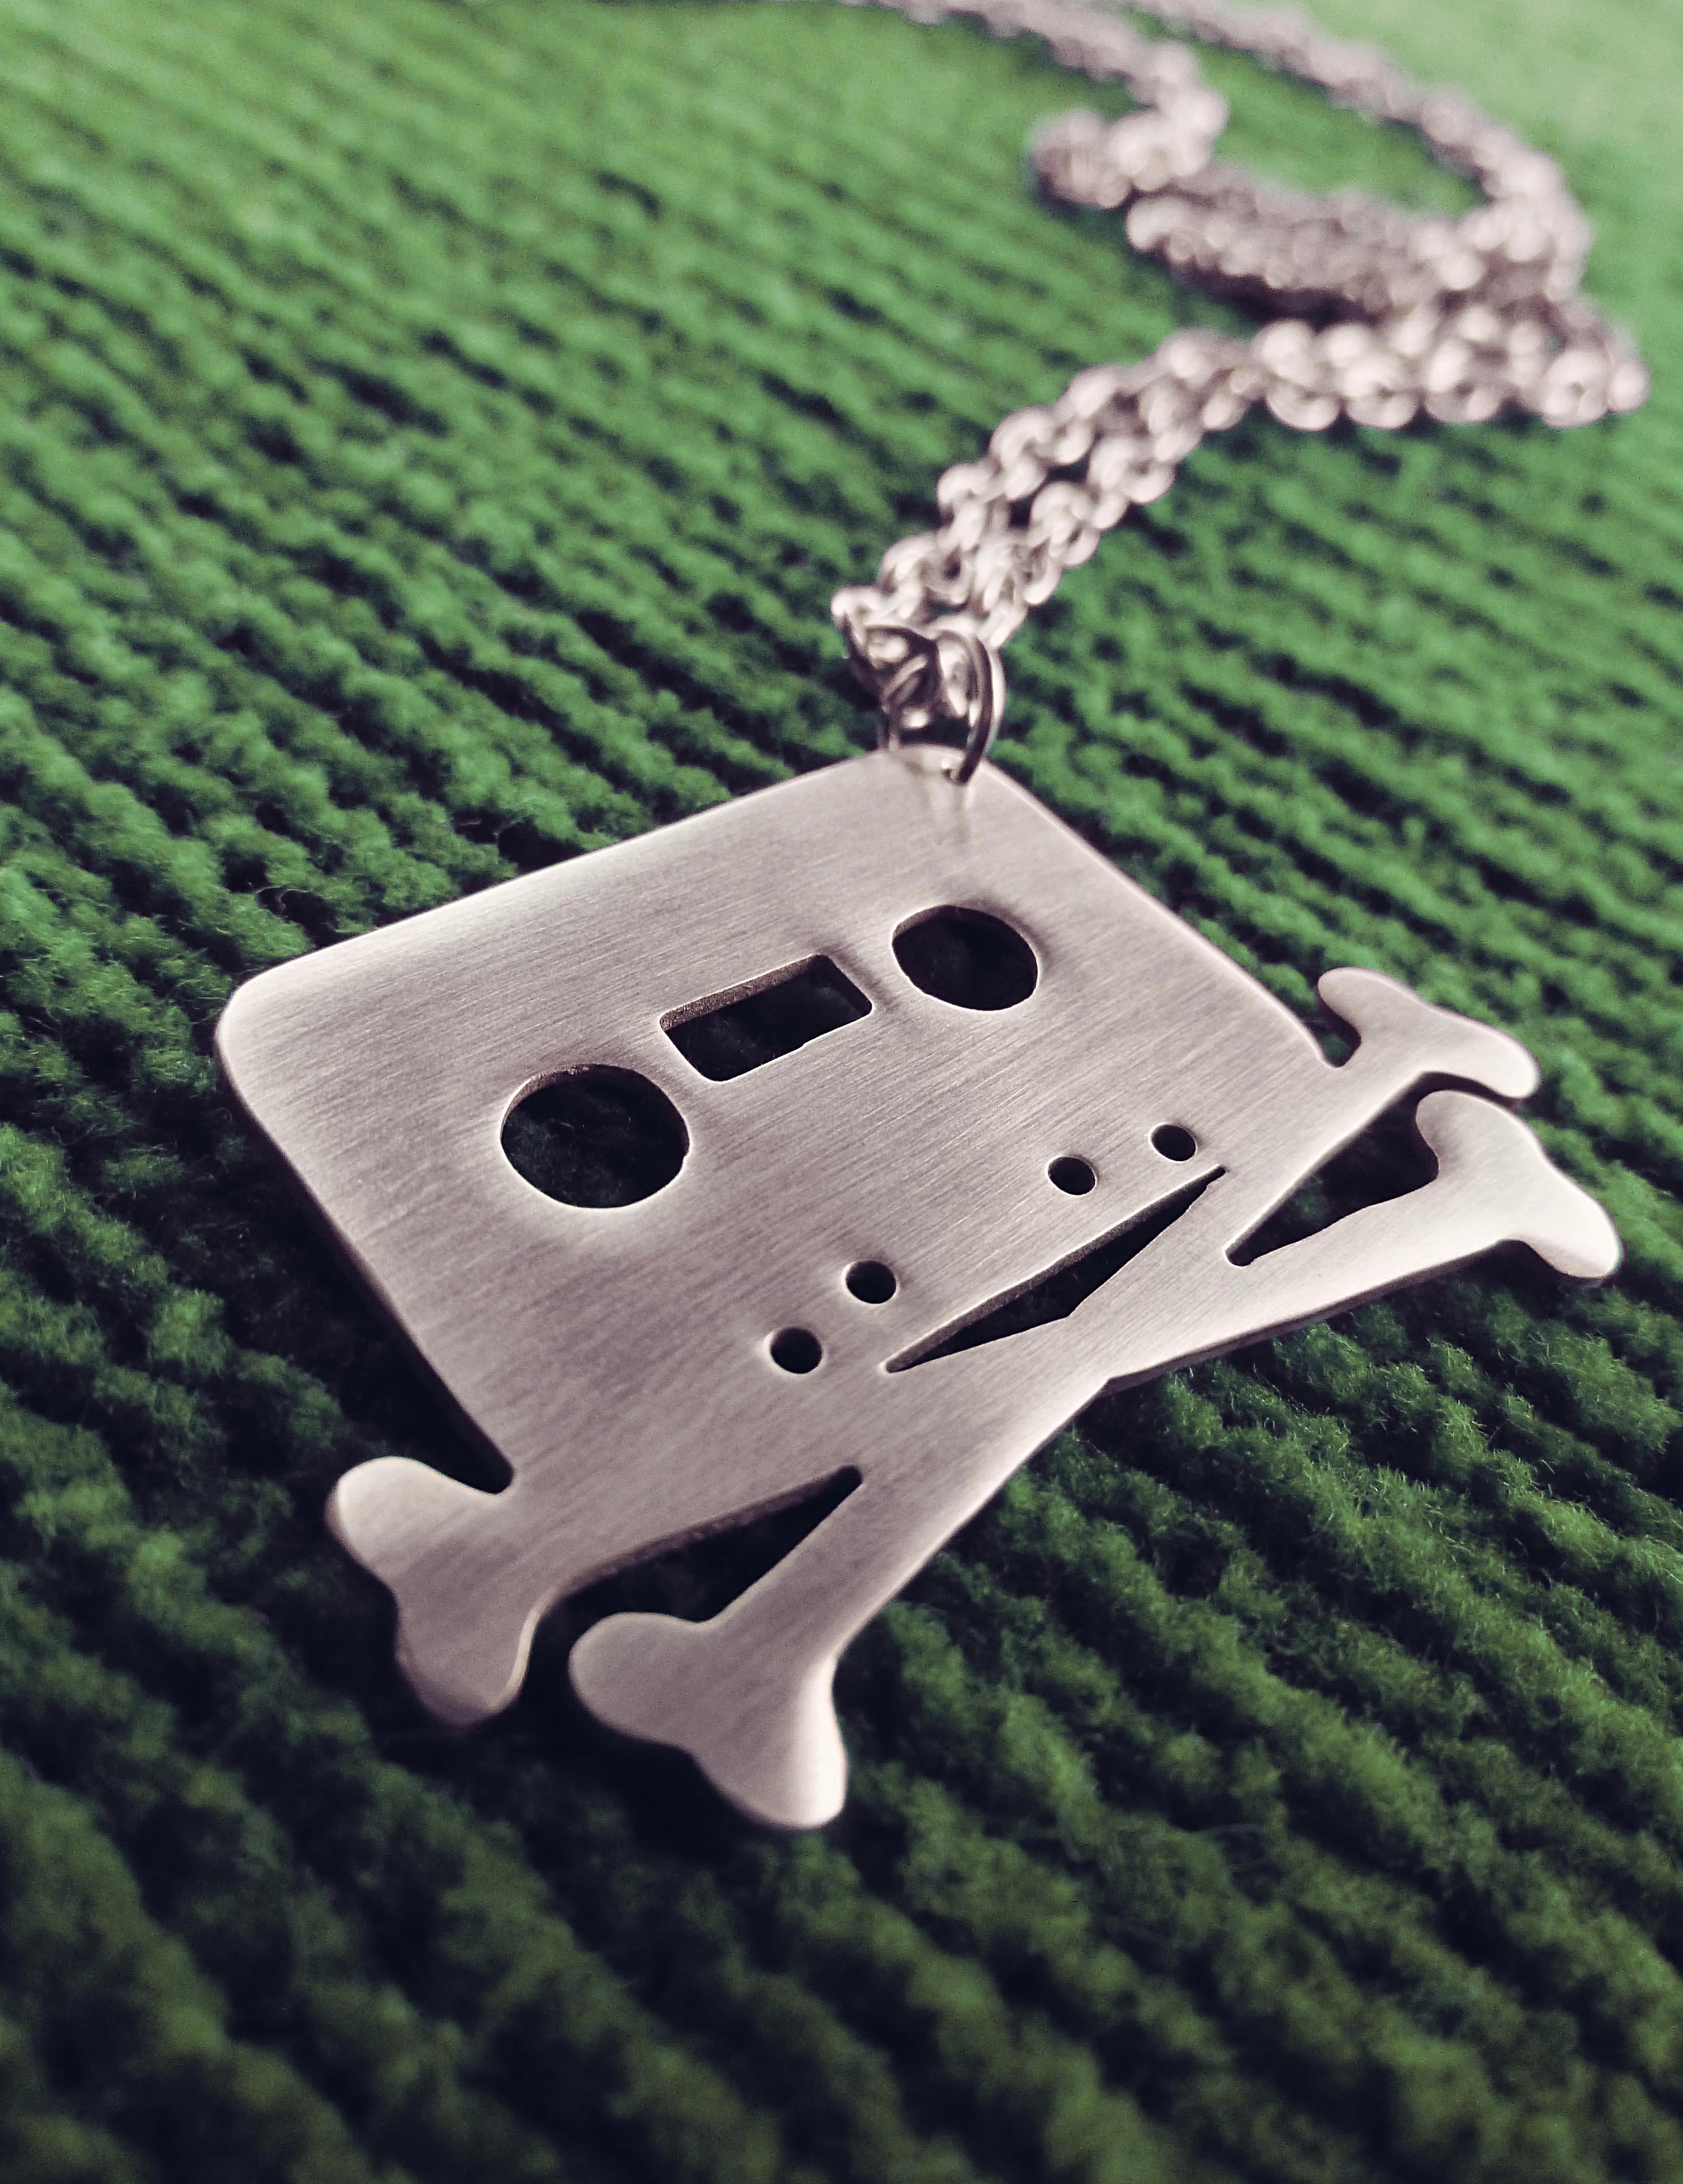 tape_and_crossbones_necklace_the_pirate_bay_cassette_necklaces_3.jpg